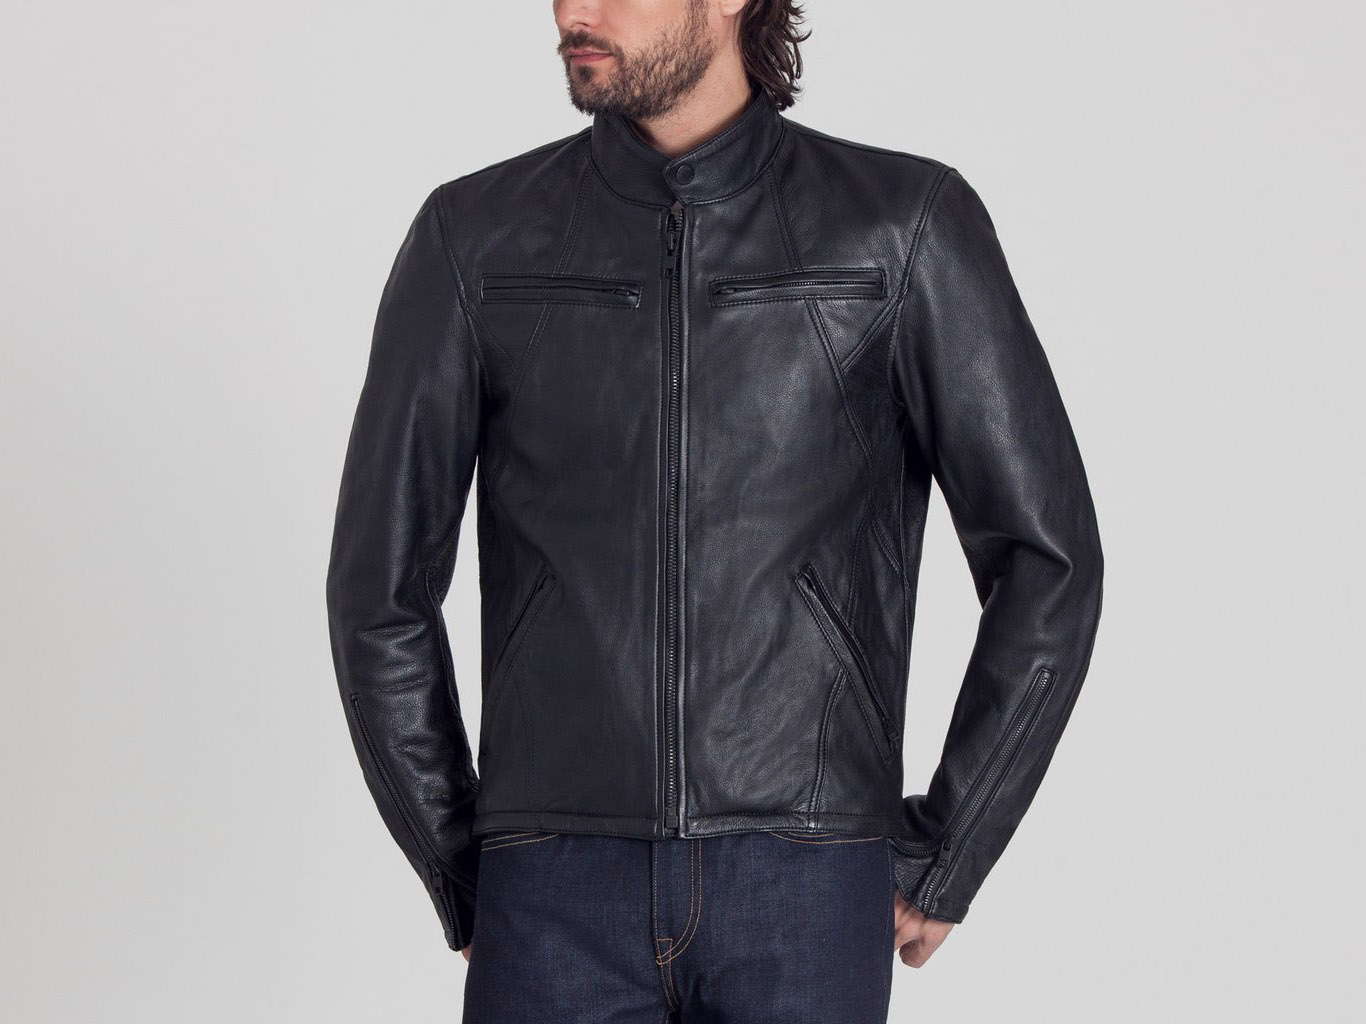 Best Fall Outerwear - Aether Men's Motorcycle Jacket